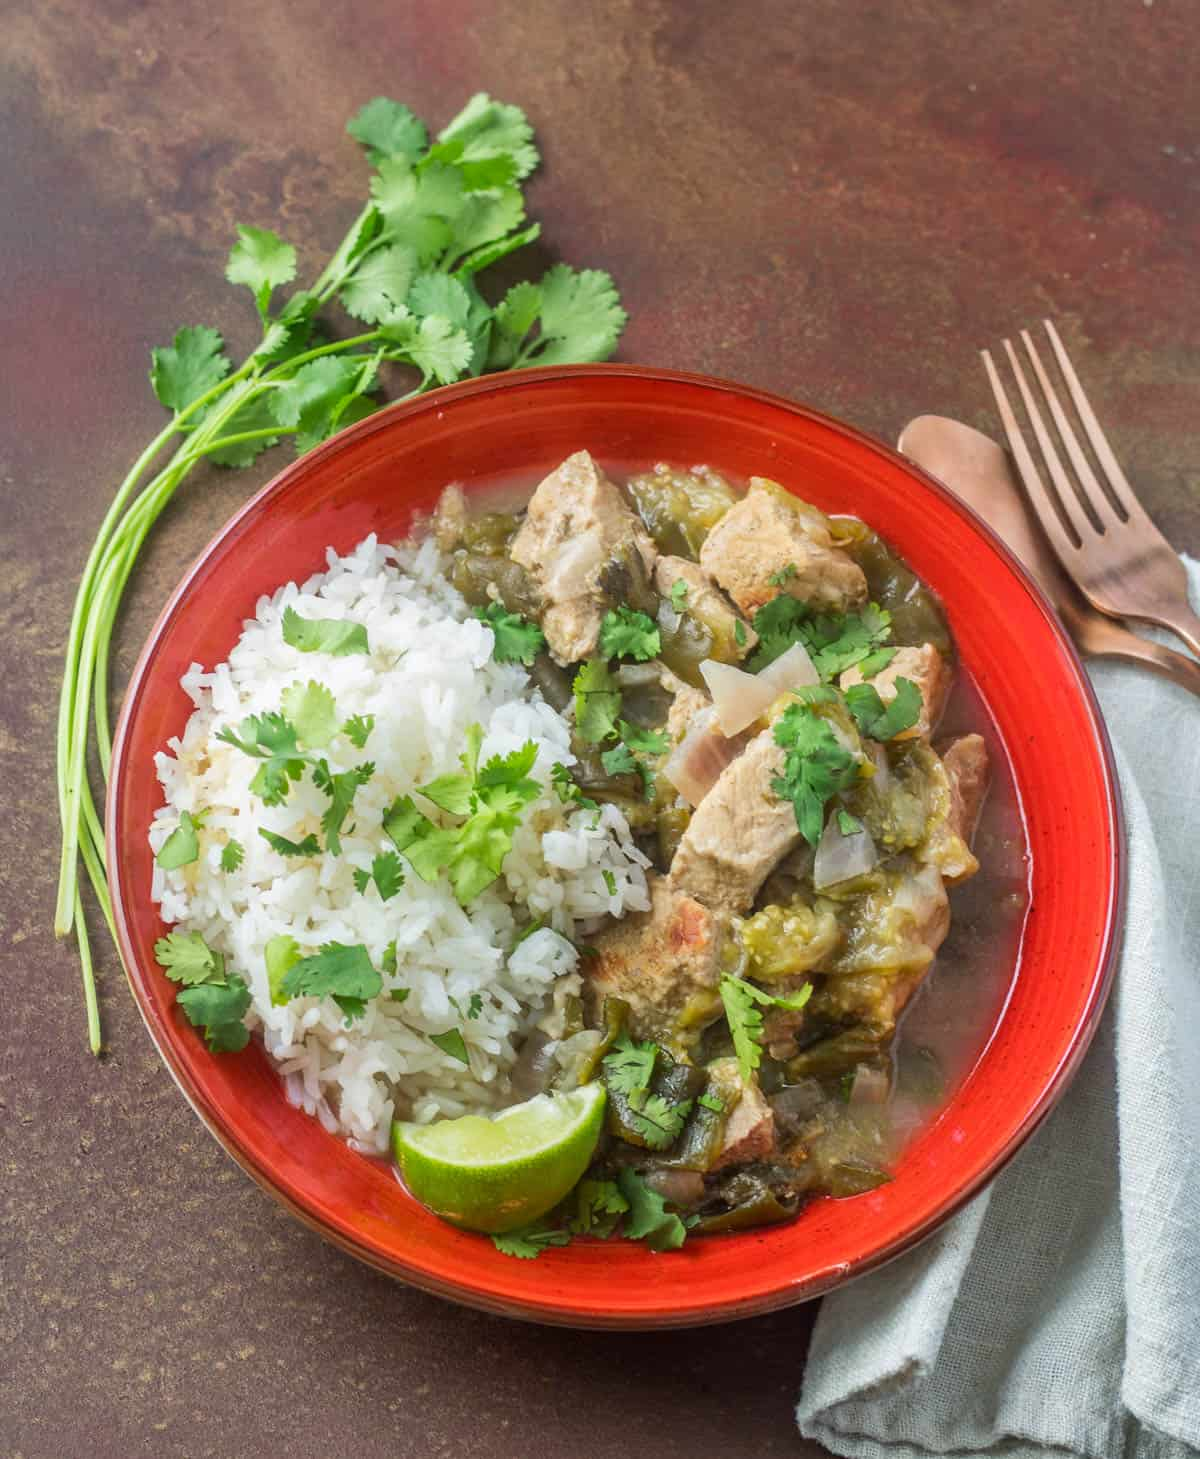 A red bowl of pork and rice garnished with cilantro and lime wedge alongside a big sprig of fresh cilantro, copper flatware and a linen napkin.